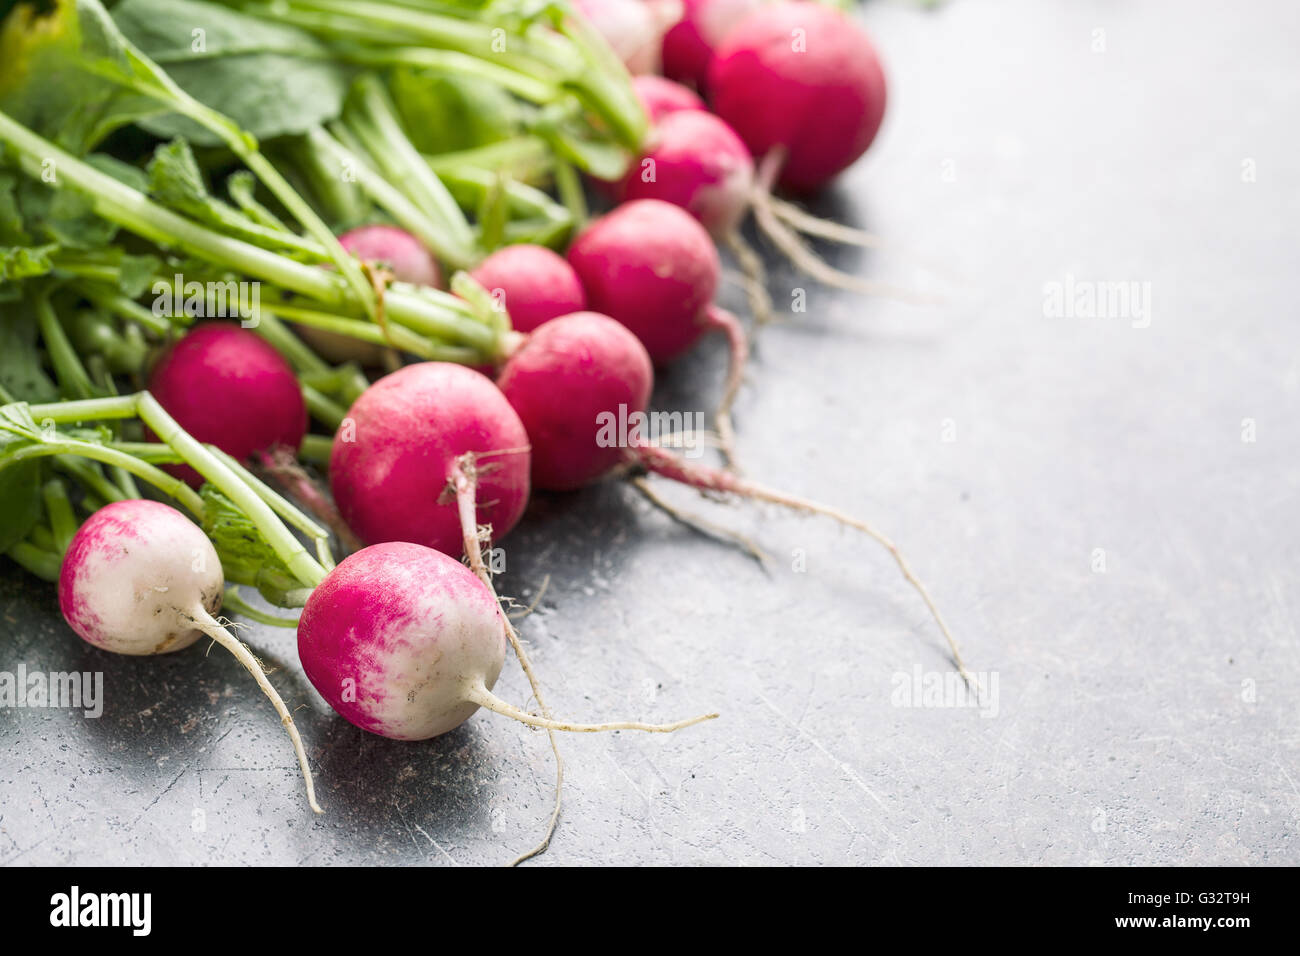 Fresh radishes on old kitchen table. Healthy vegetable. - Stock Image